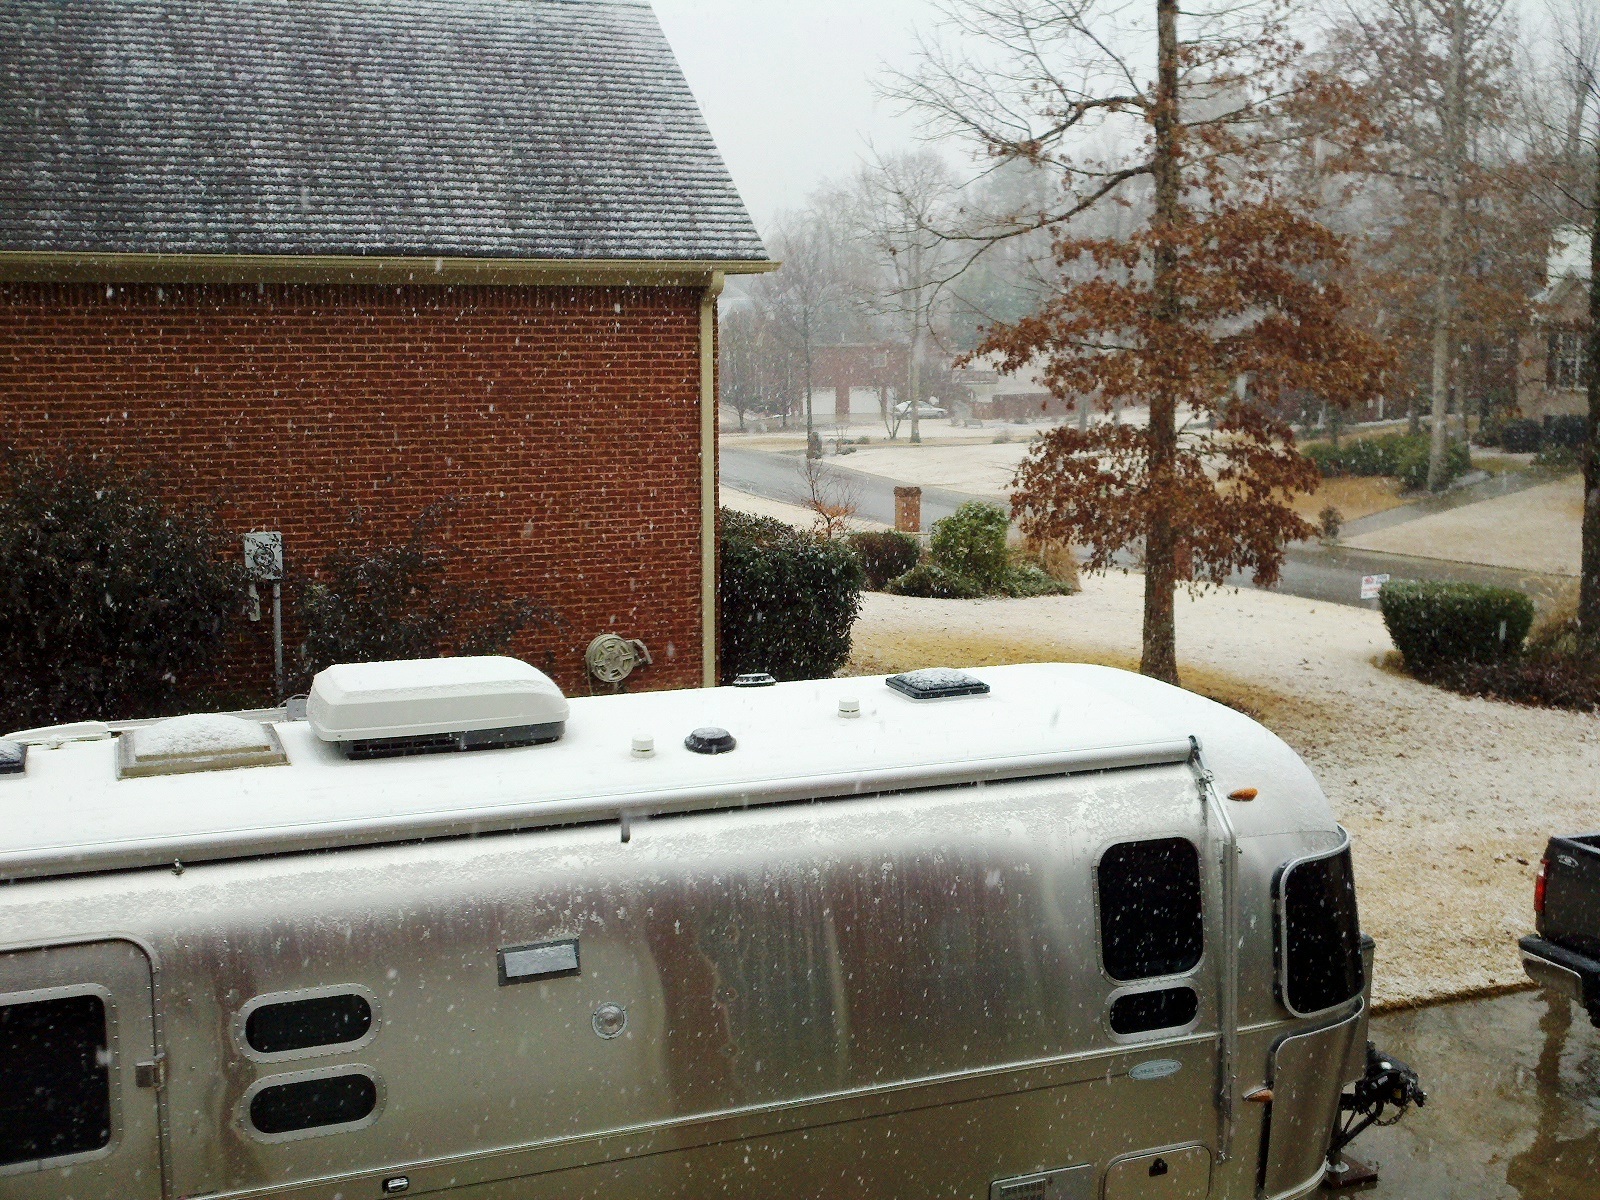 Click image for larger version  Name:Xmas Snow.jpg Views:77 Size:1.02 MB ID:117849